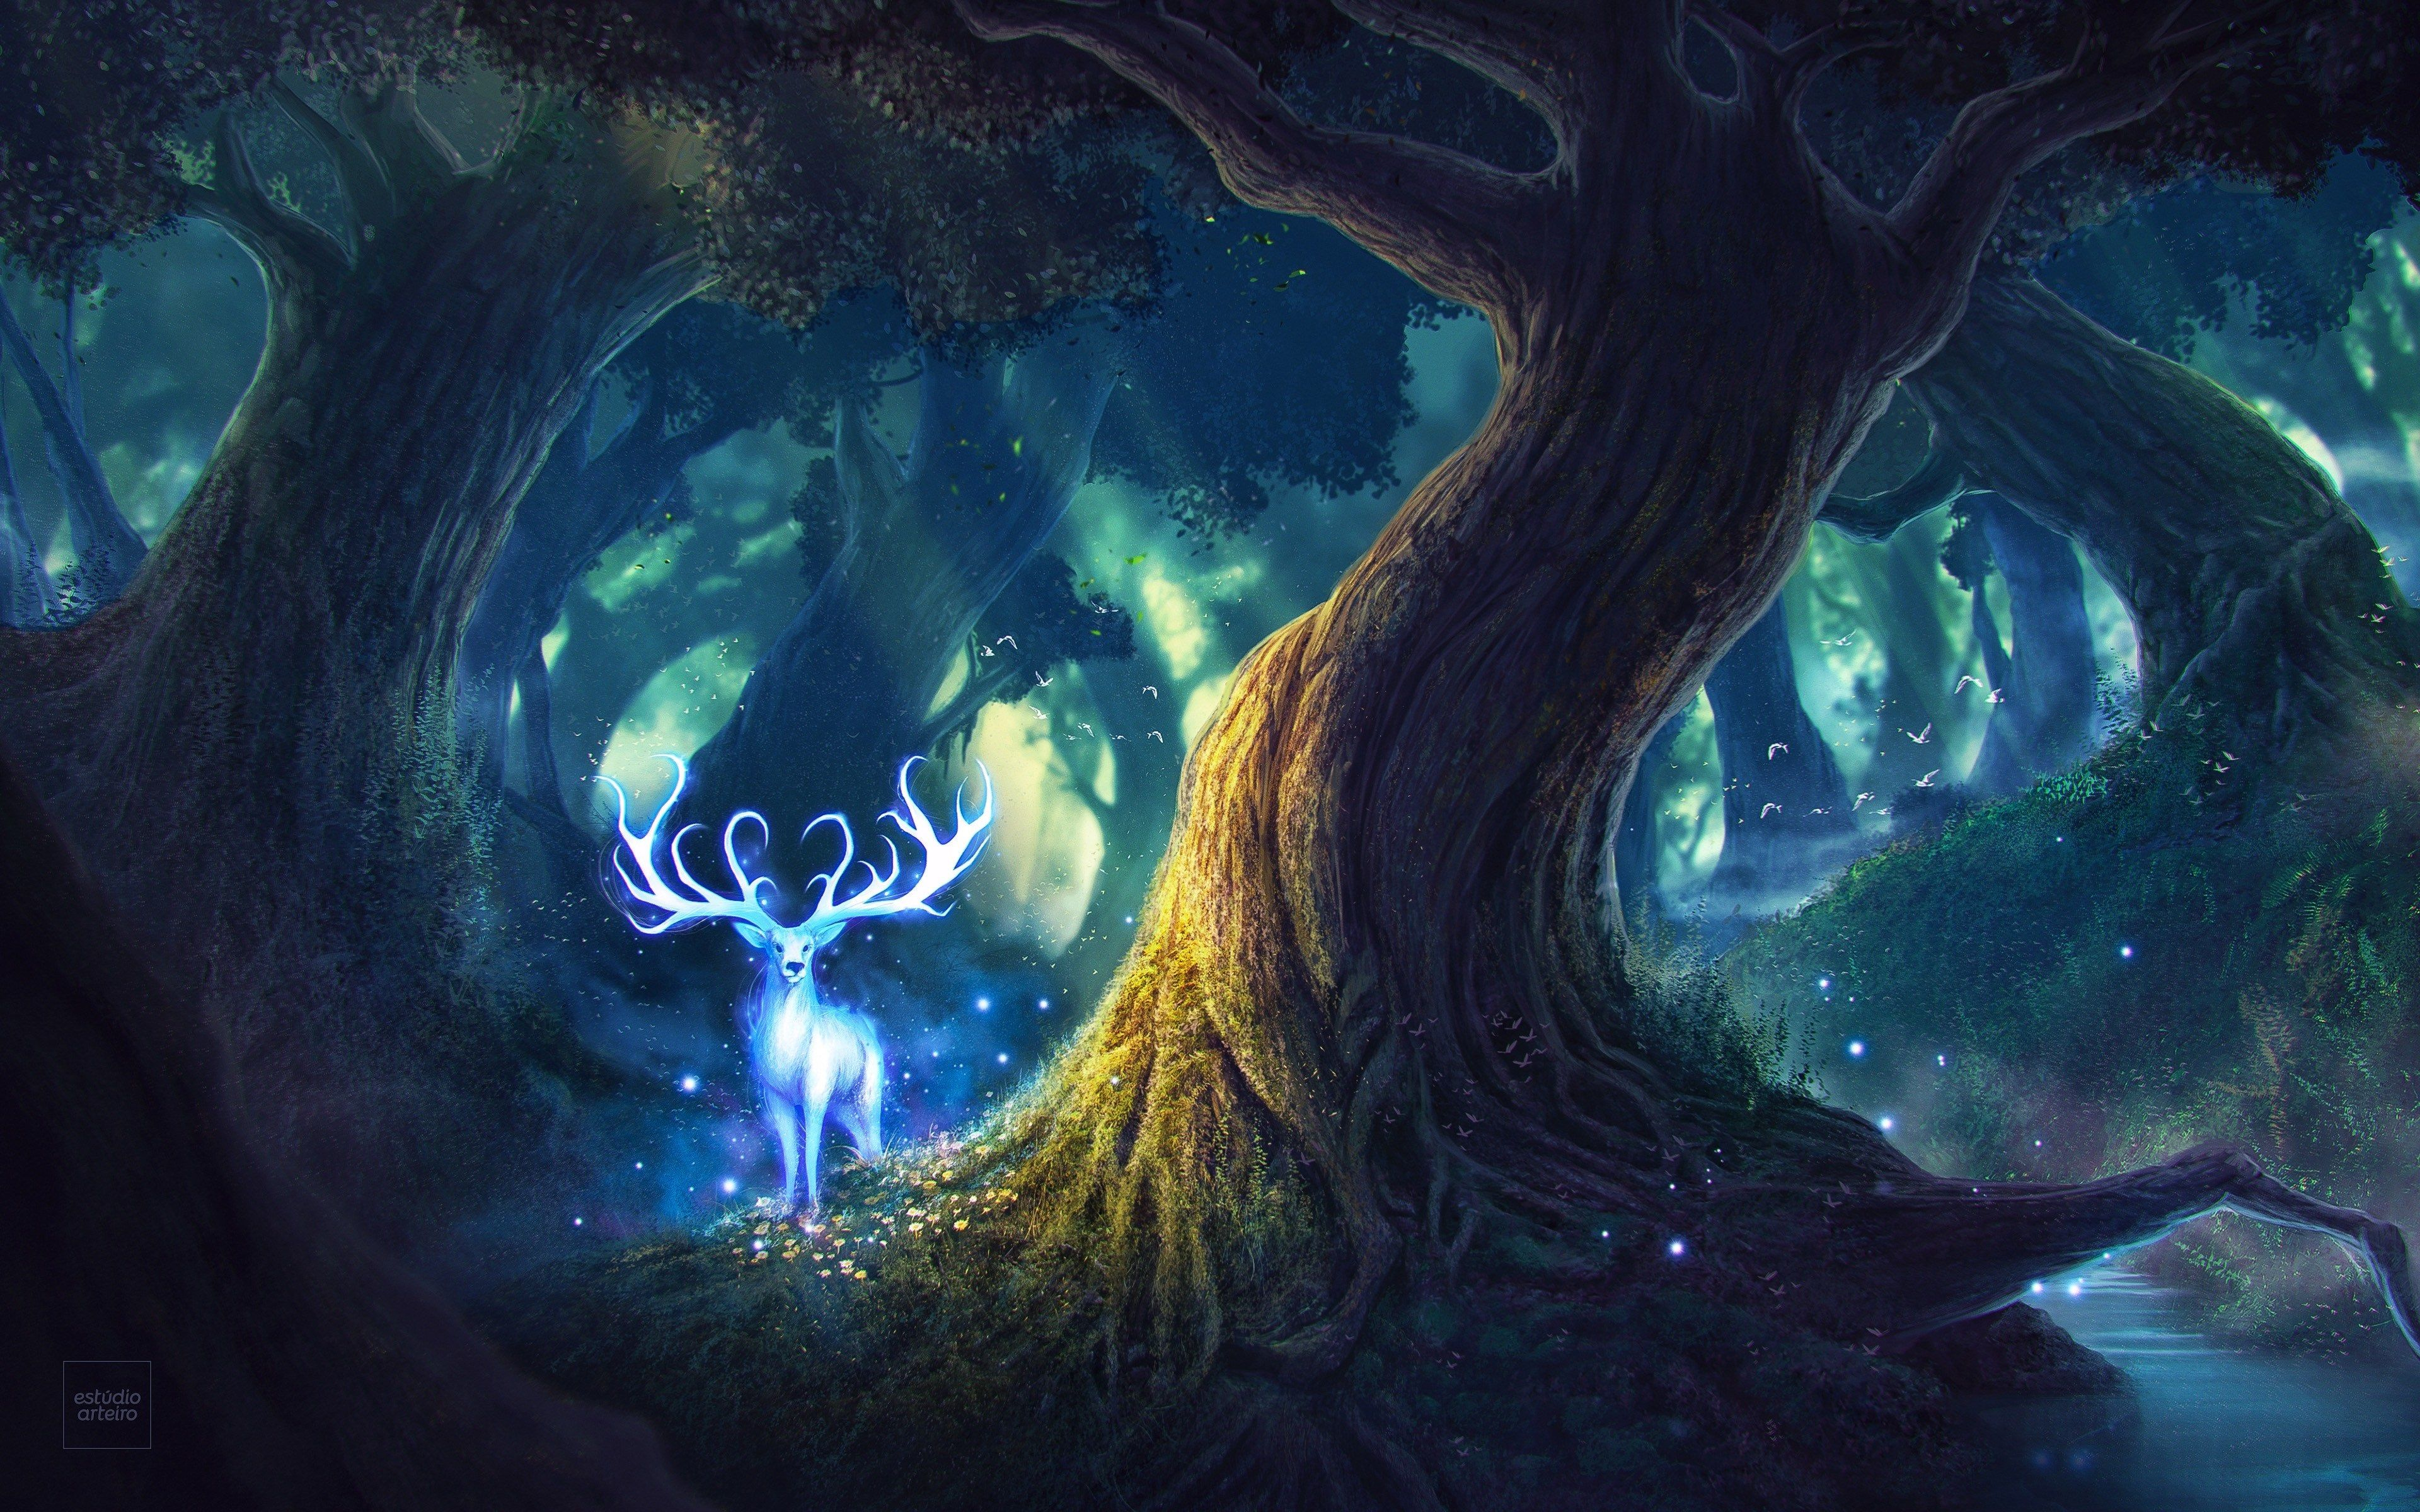 3840x2400 Magic 4k Full Hd Wallpaper Magic Forest Deer Art Forest Art